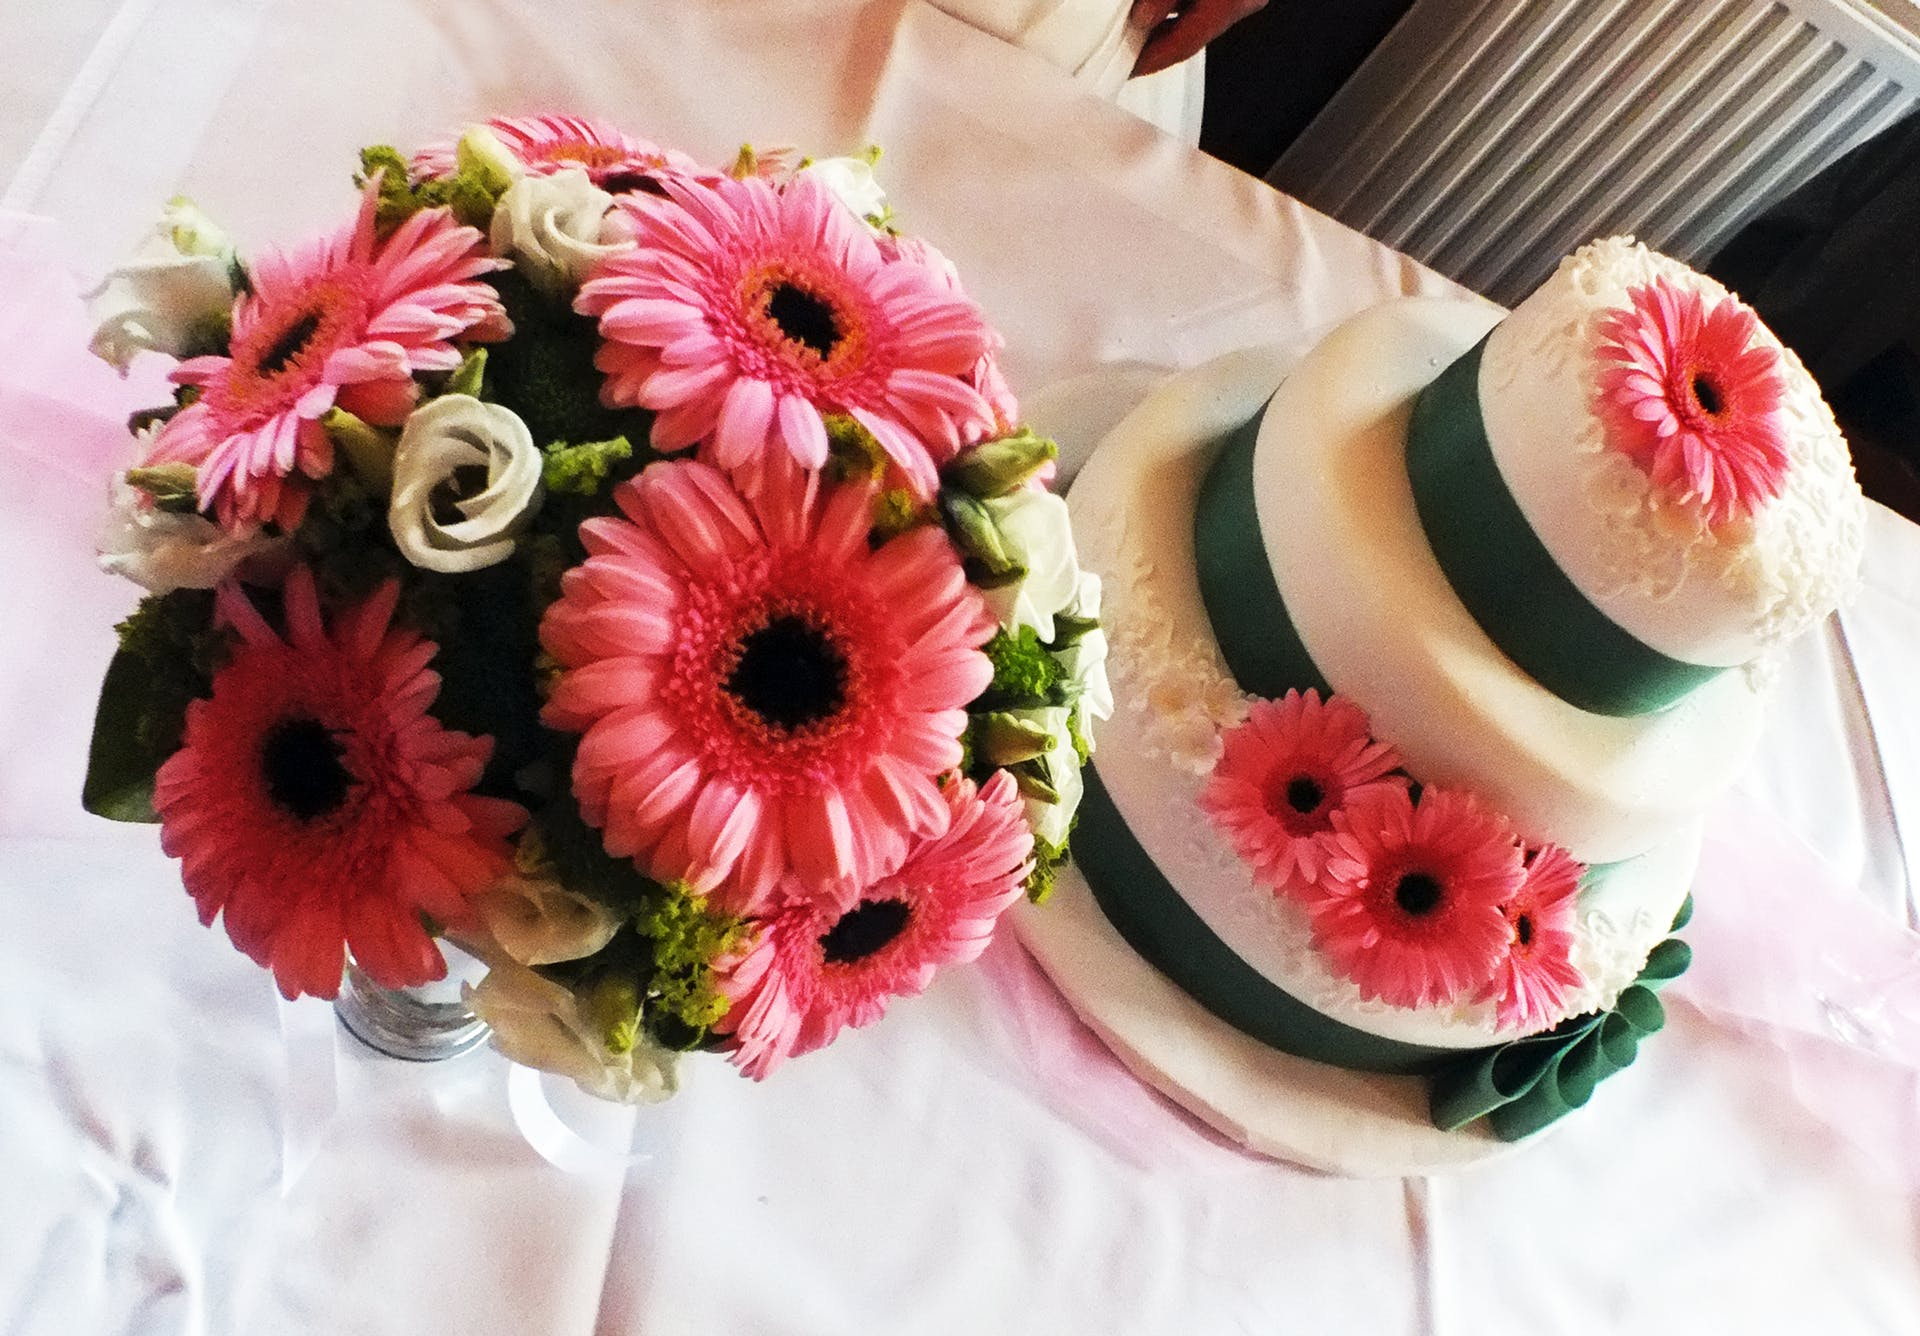 wedding cake party marriage wedding party beautiful flowers wedding bride and groom fresh flowers flowers lunch